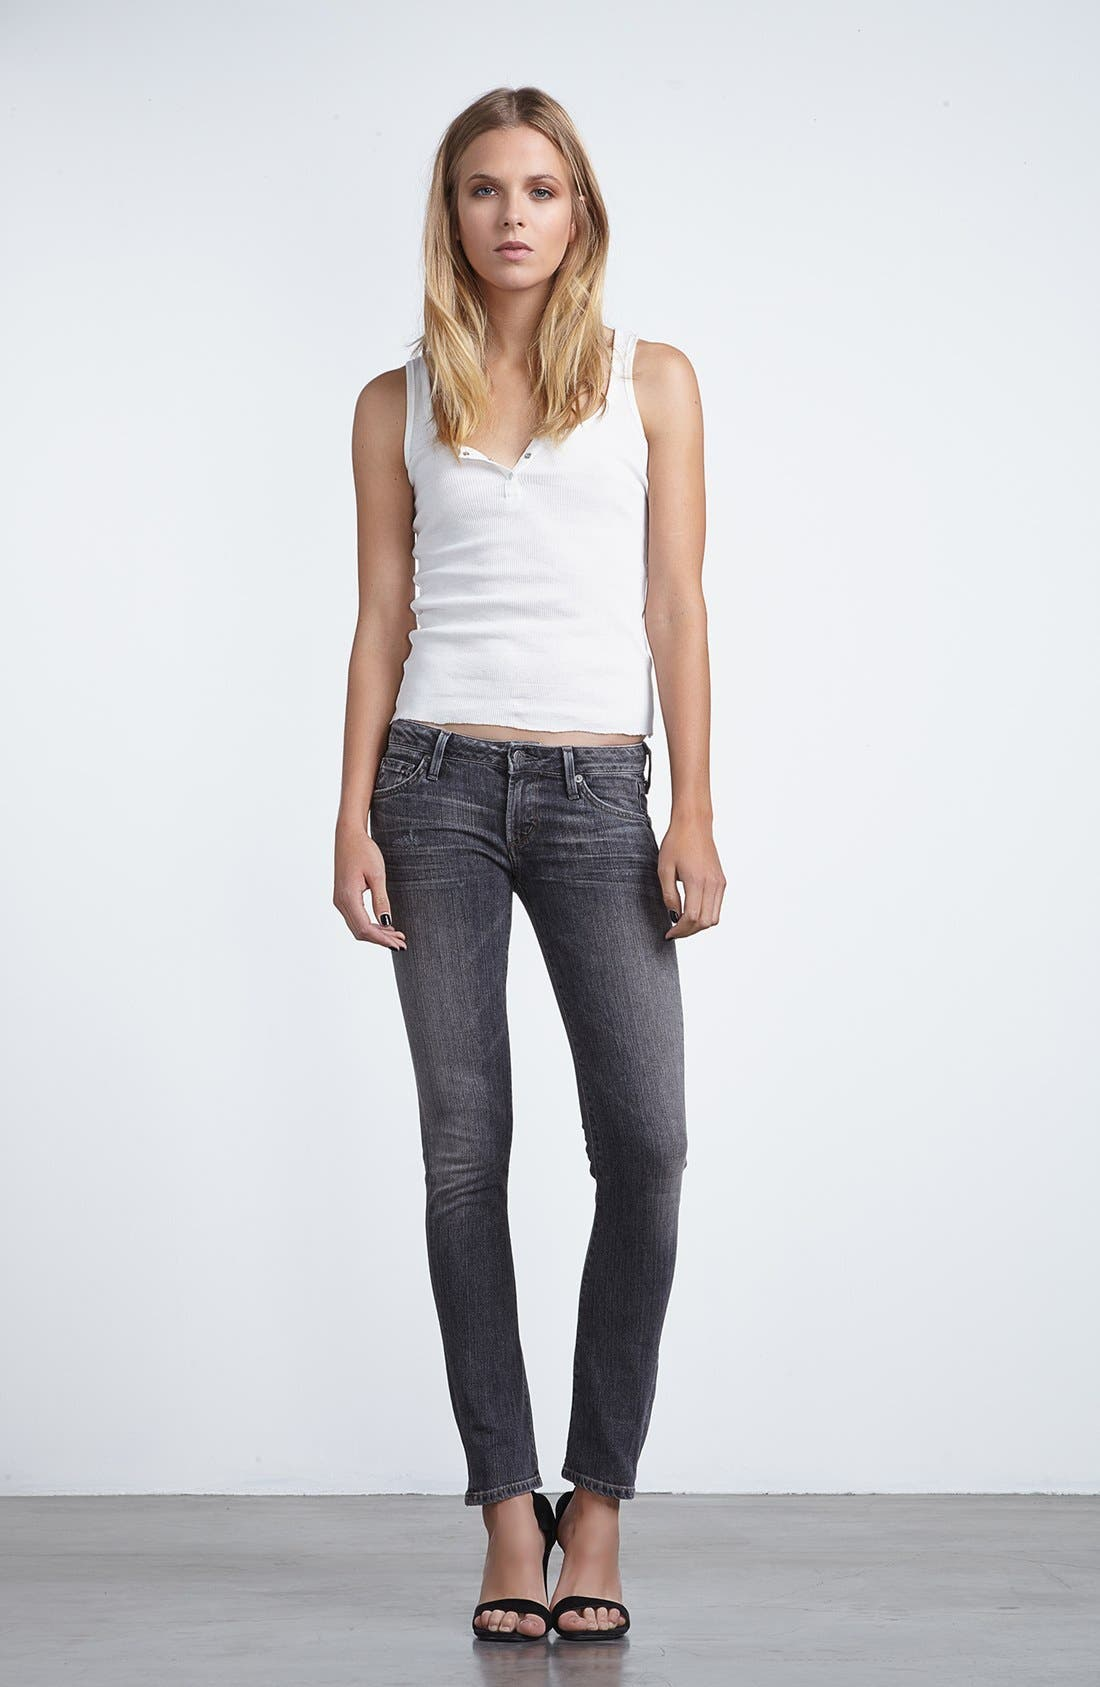 Alternate Image 1 Selected - James Perse Tank & Citizens of Humanity Skinny Jeans